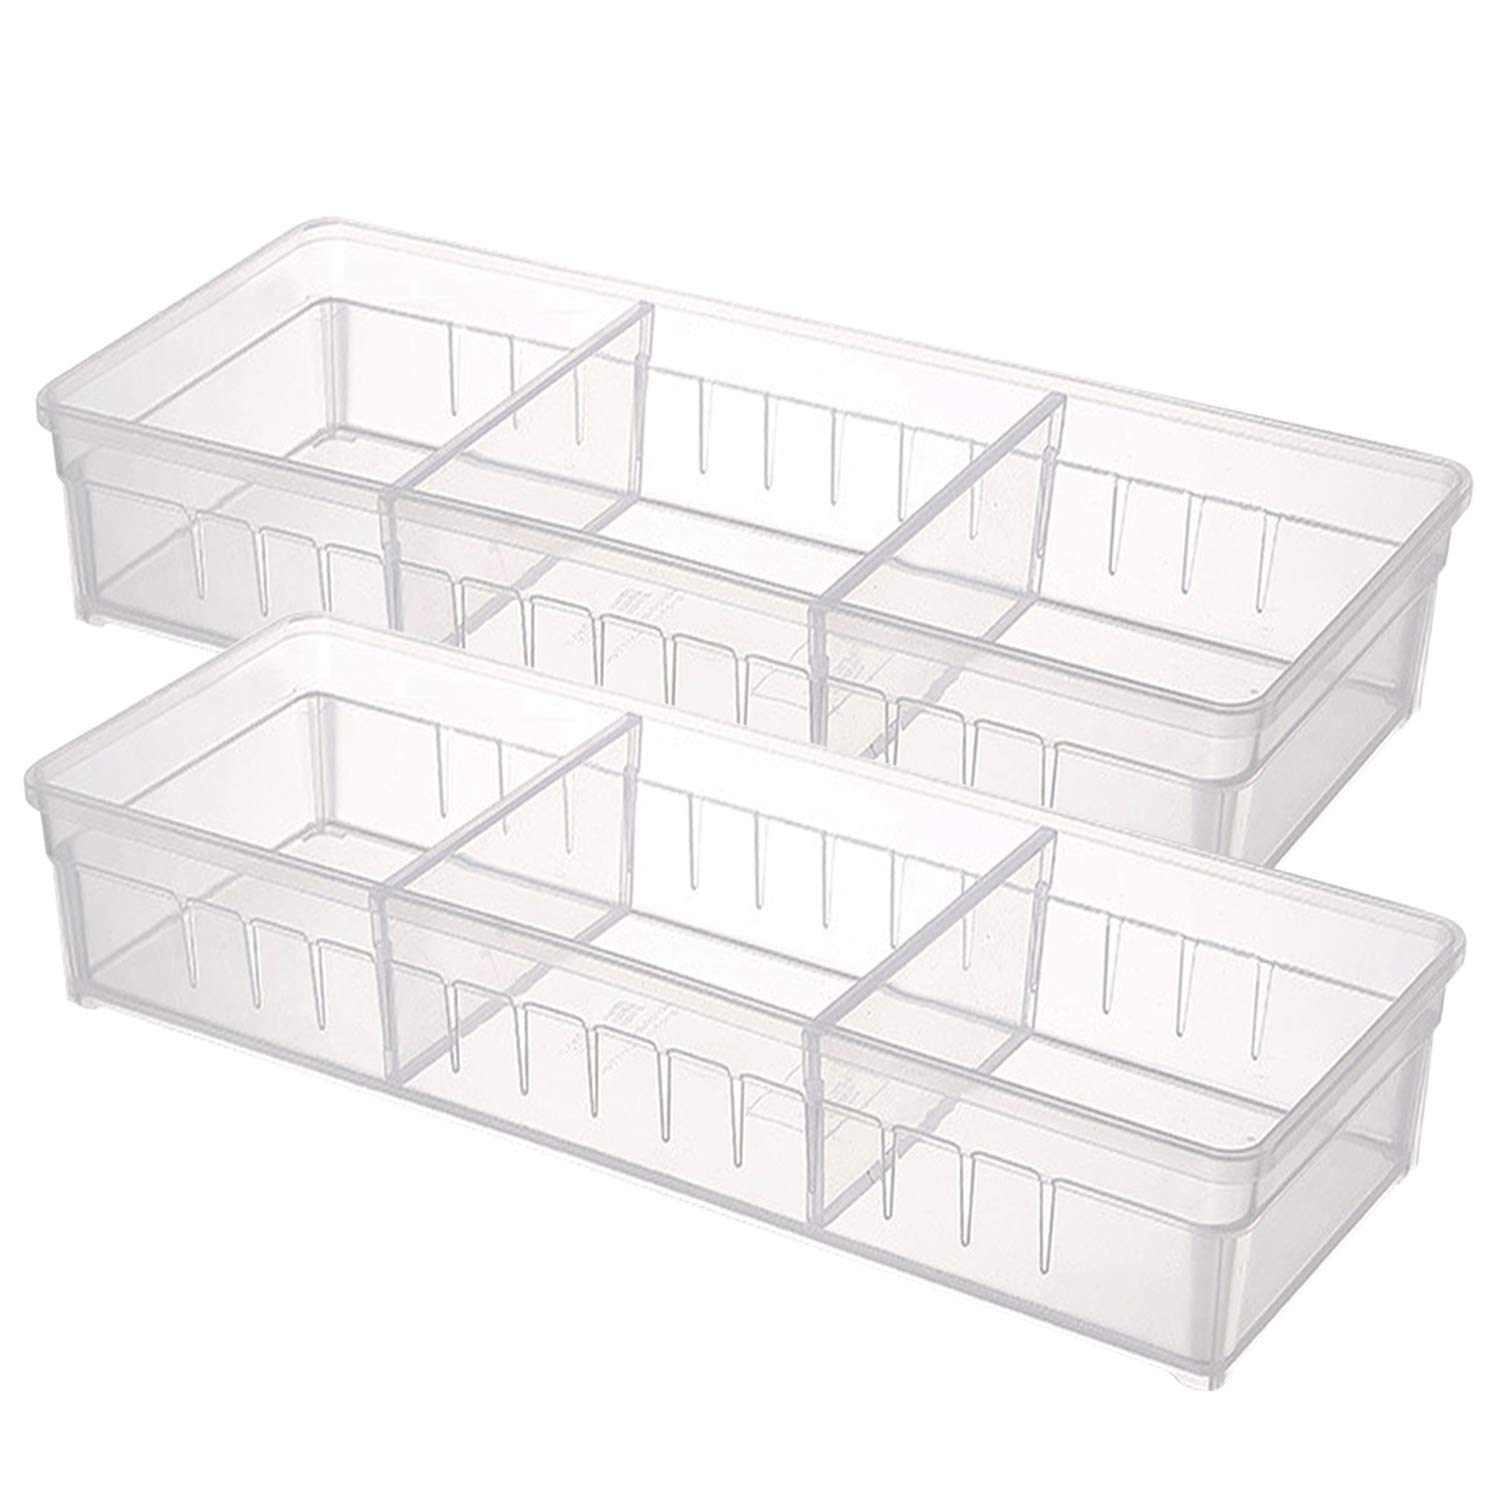 Drawer Organizer, Anumit Clear Plastic Storage Drawers with 2 Adjustable Drawer Dividers for Office, School, Kitchen, Dresser, Desk, Bedroom (2 Pack)